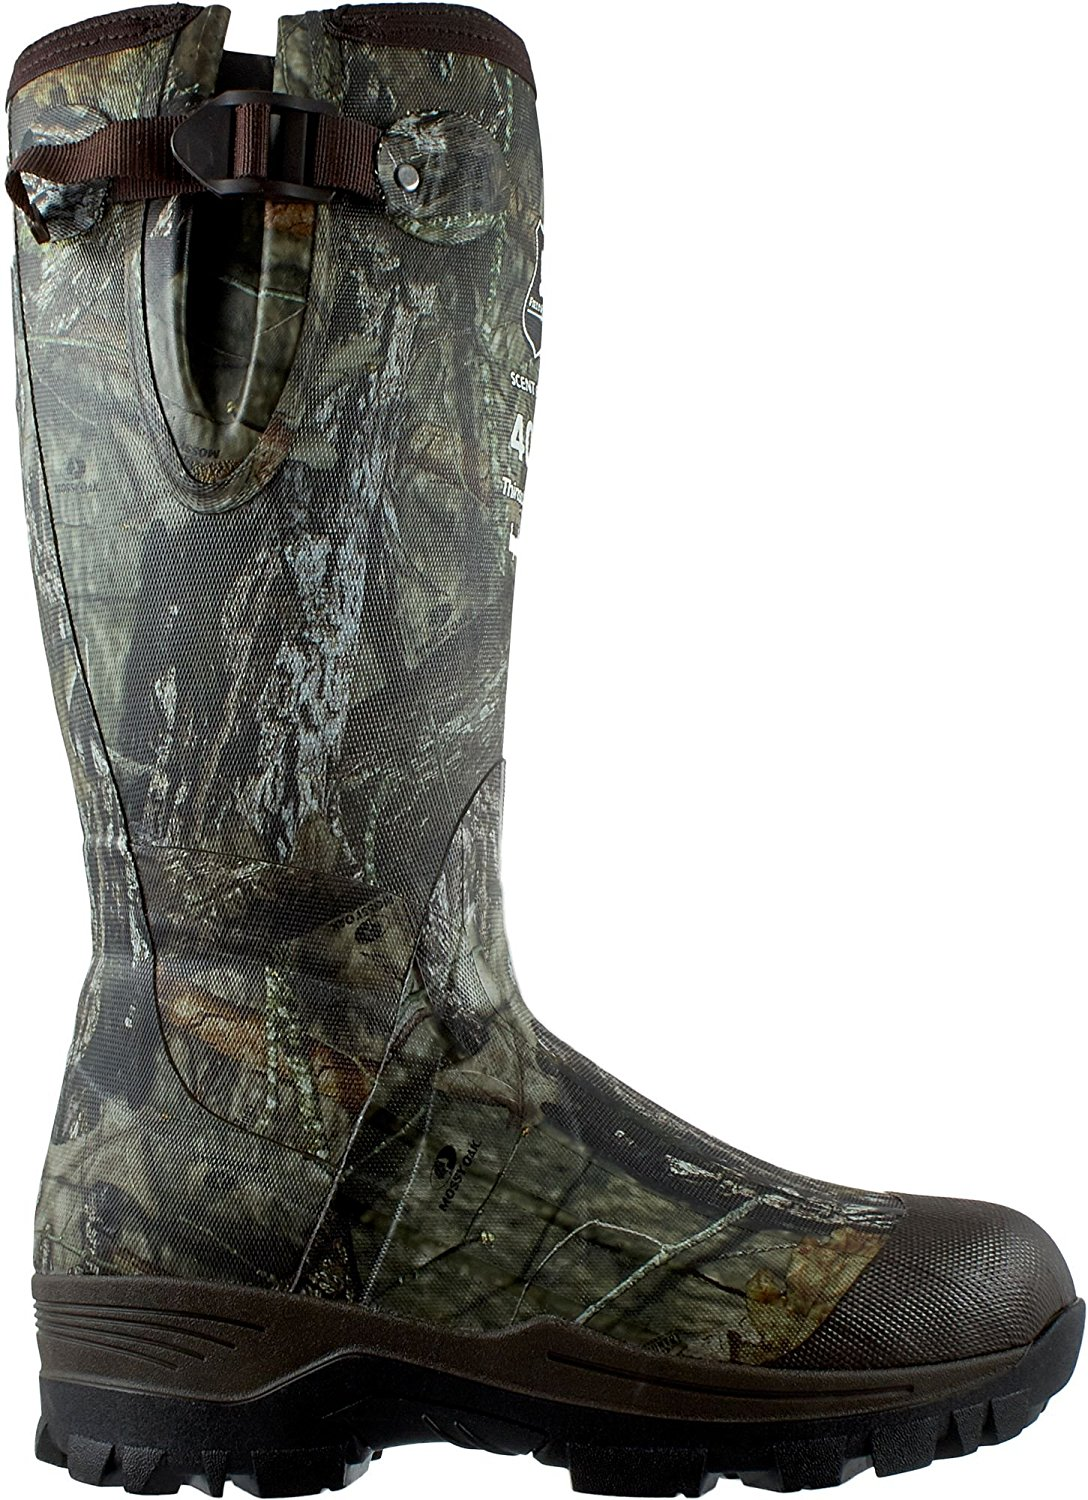 2da0f8ccb43 Cheap Mossy Oak Rubber Boots, find Mossy Oak Rubber Boots deals on ...